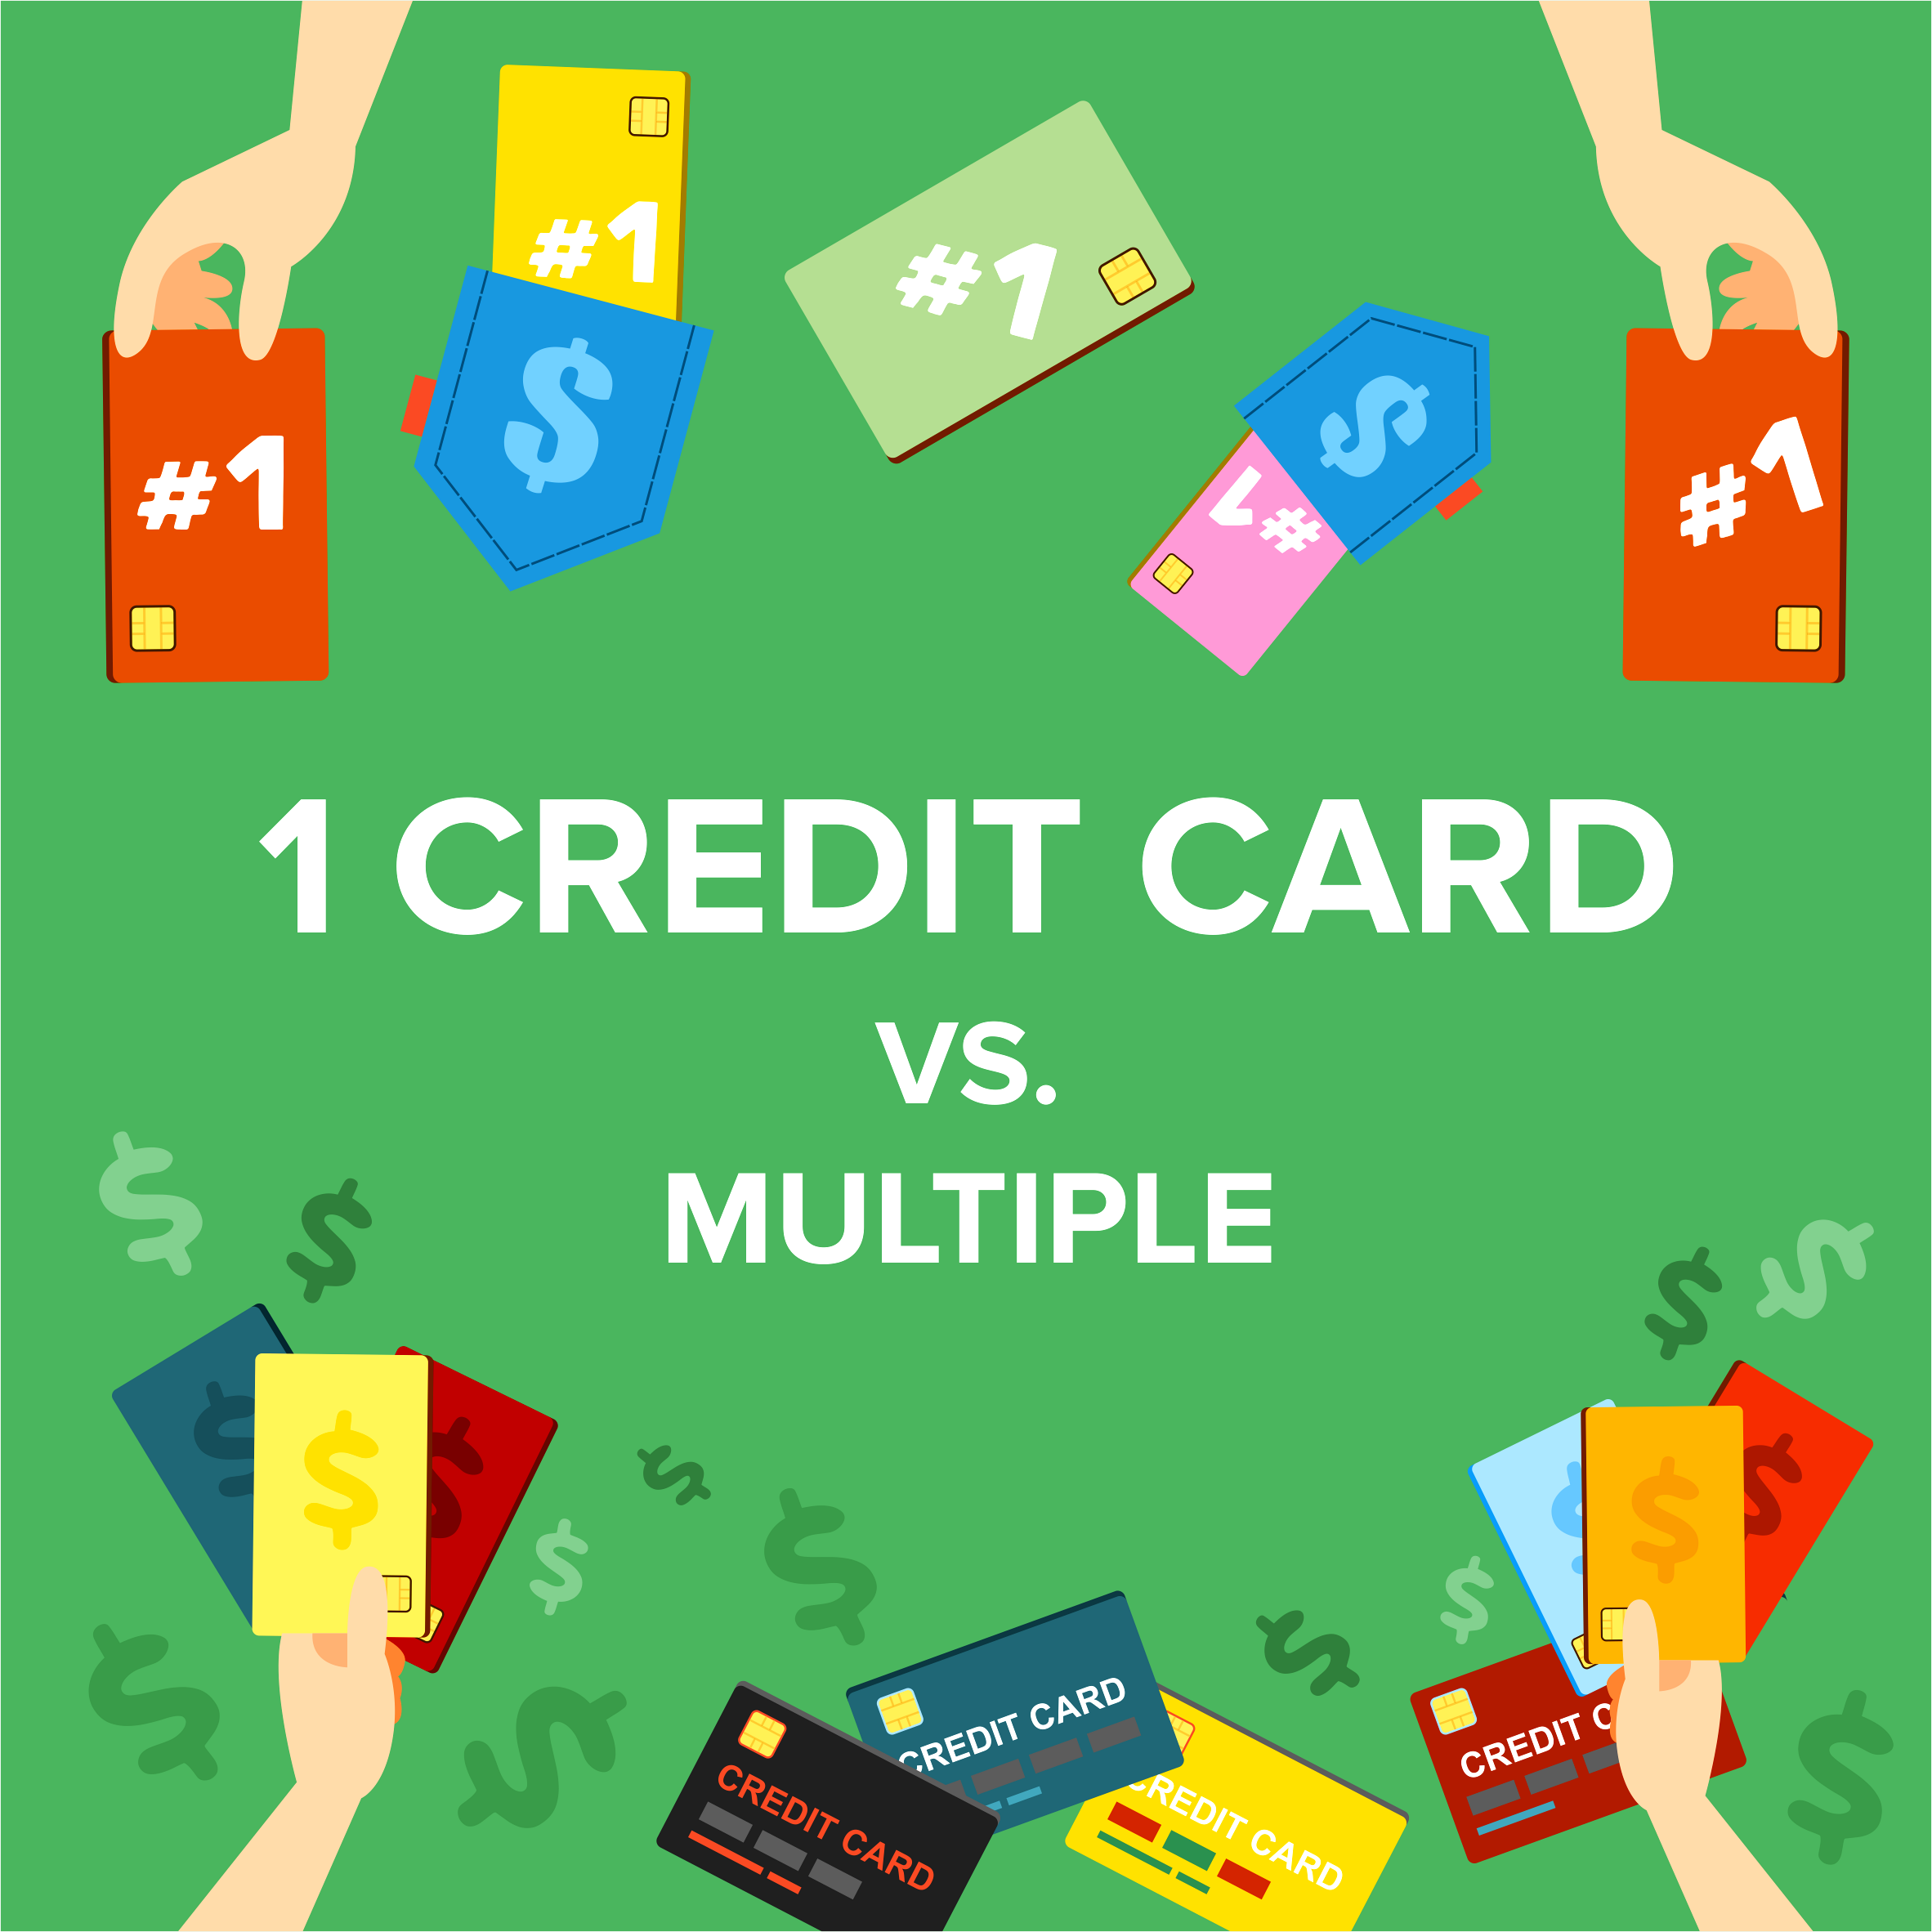 1 Credit Card Vs. Multiple